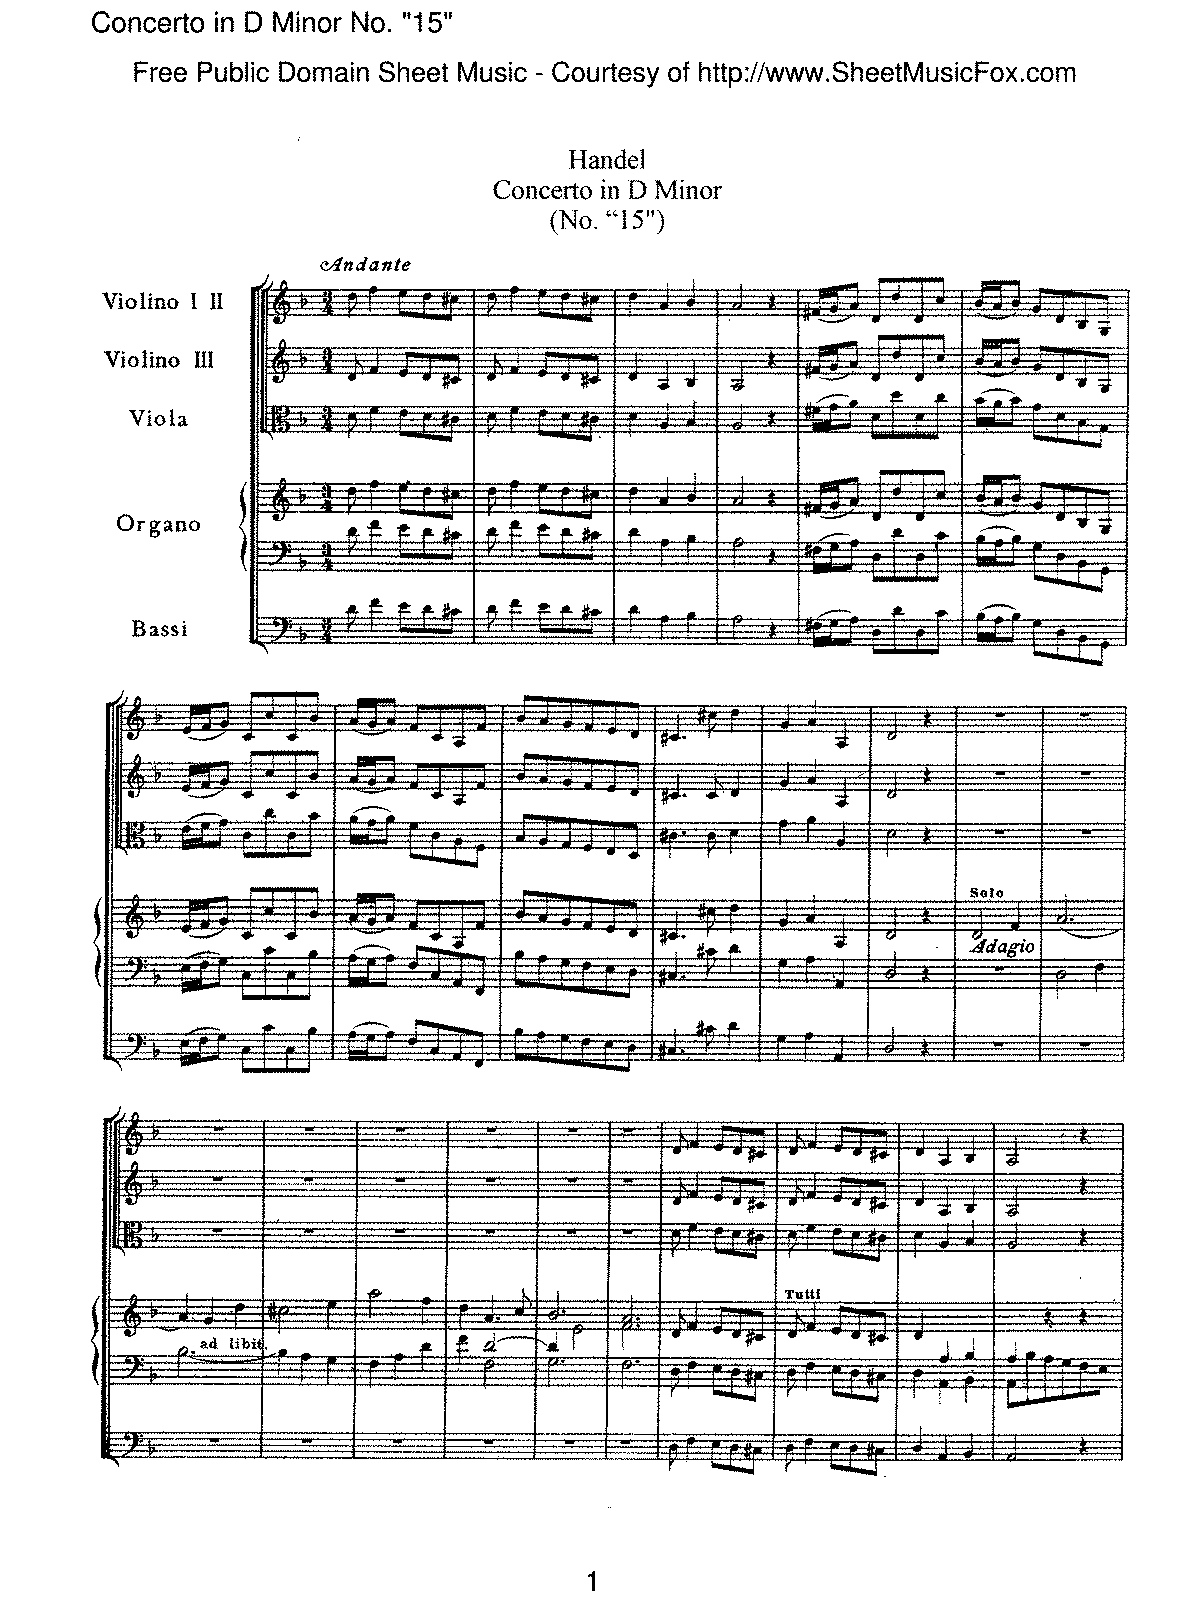 Handel - Concerto in D minor, No. '15'.pdf